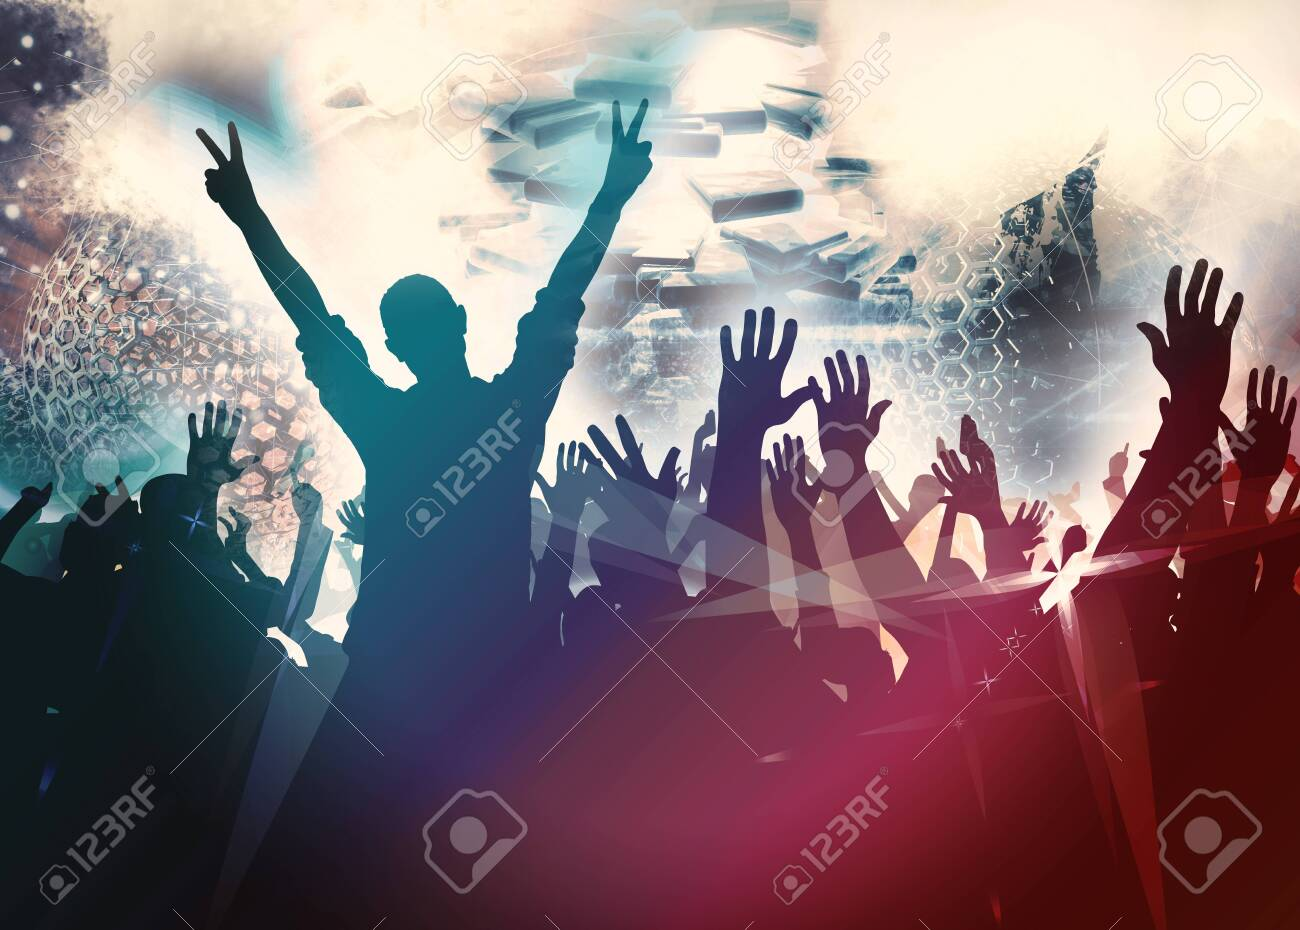 Party background with dancing people - 128584134